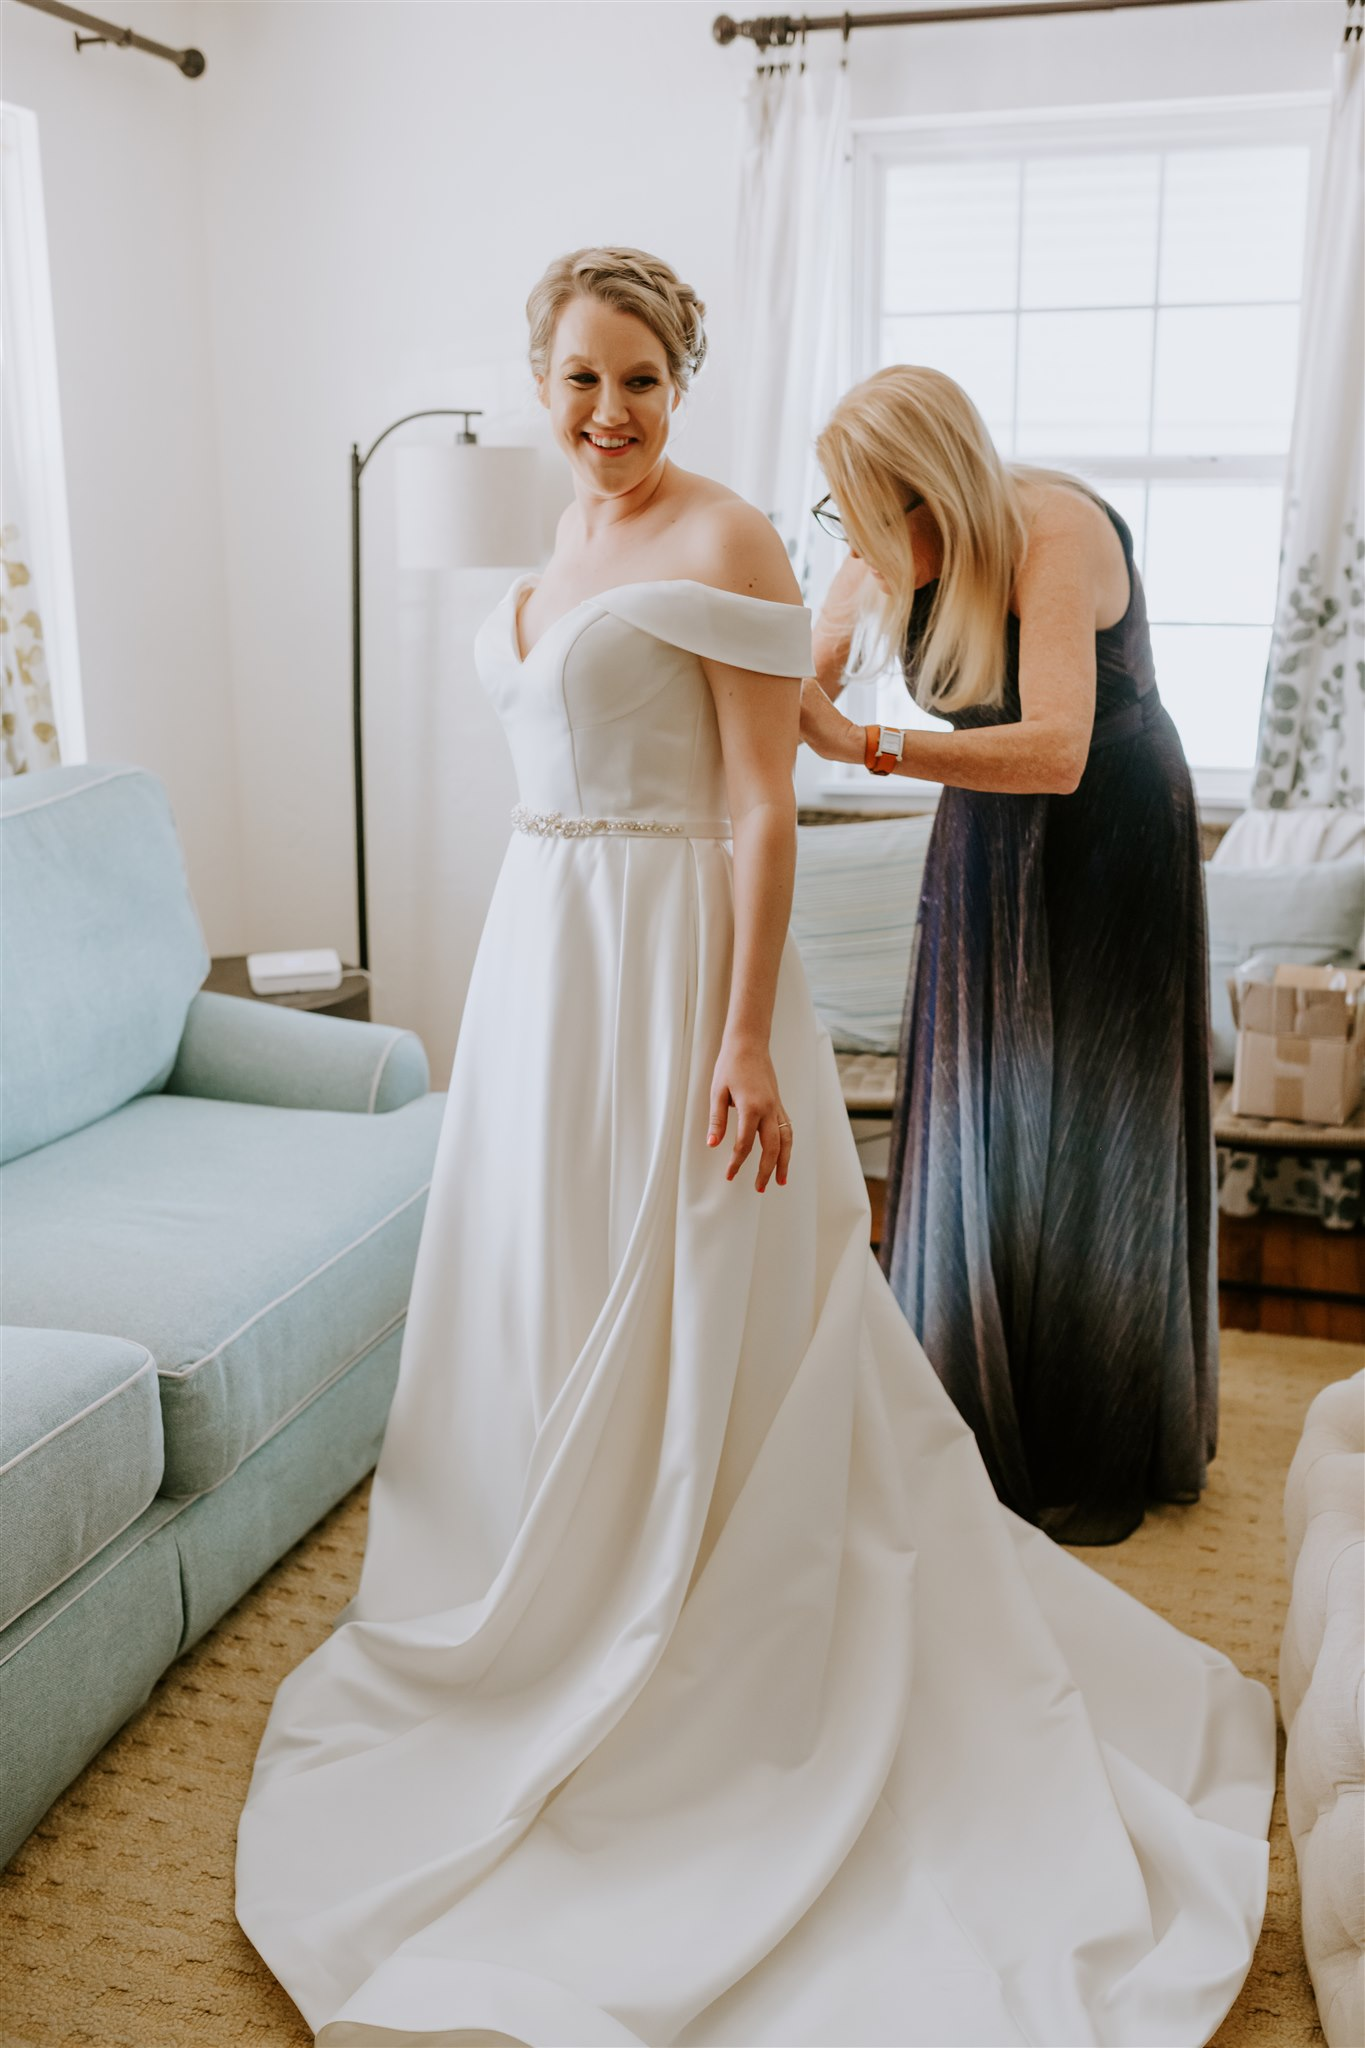 Regina Rached Photography St Petersburg USA lesbian gay same-sex two bride wedding Dancing With Her print digital magazine